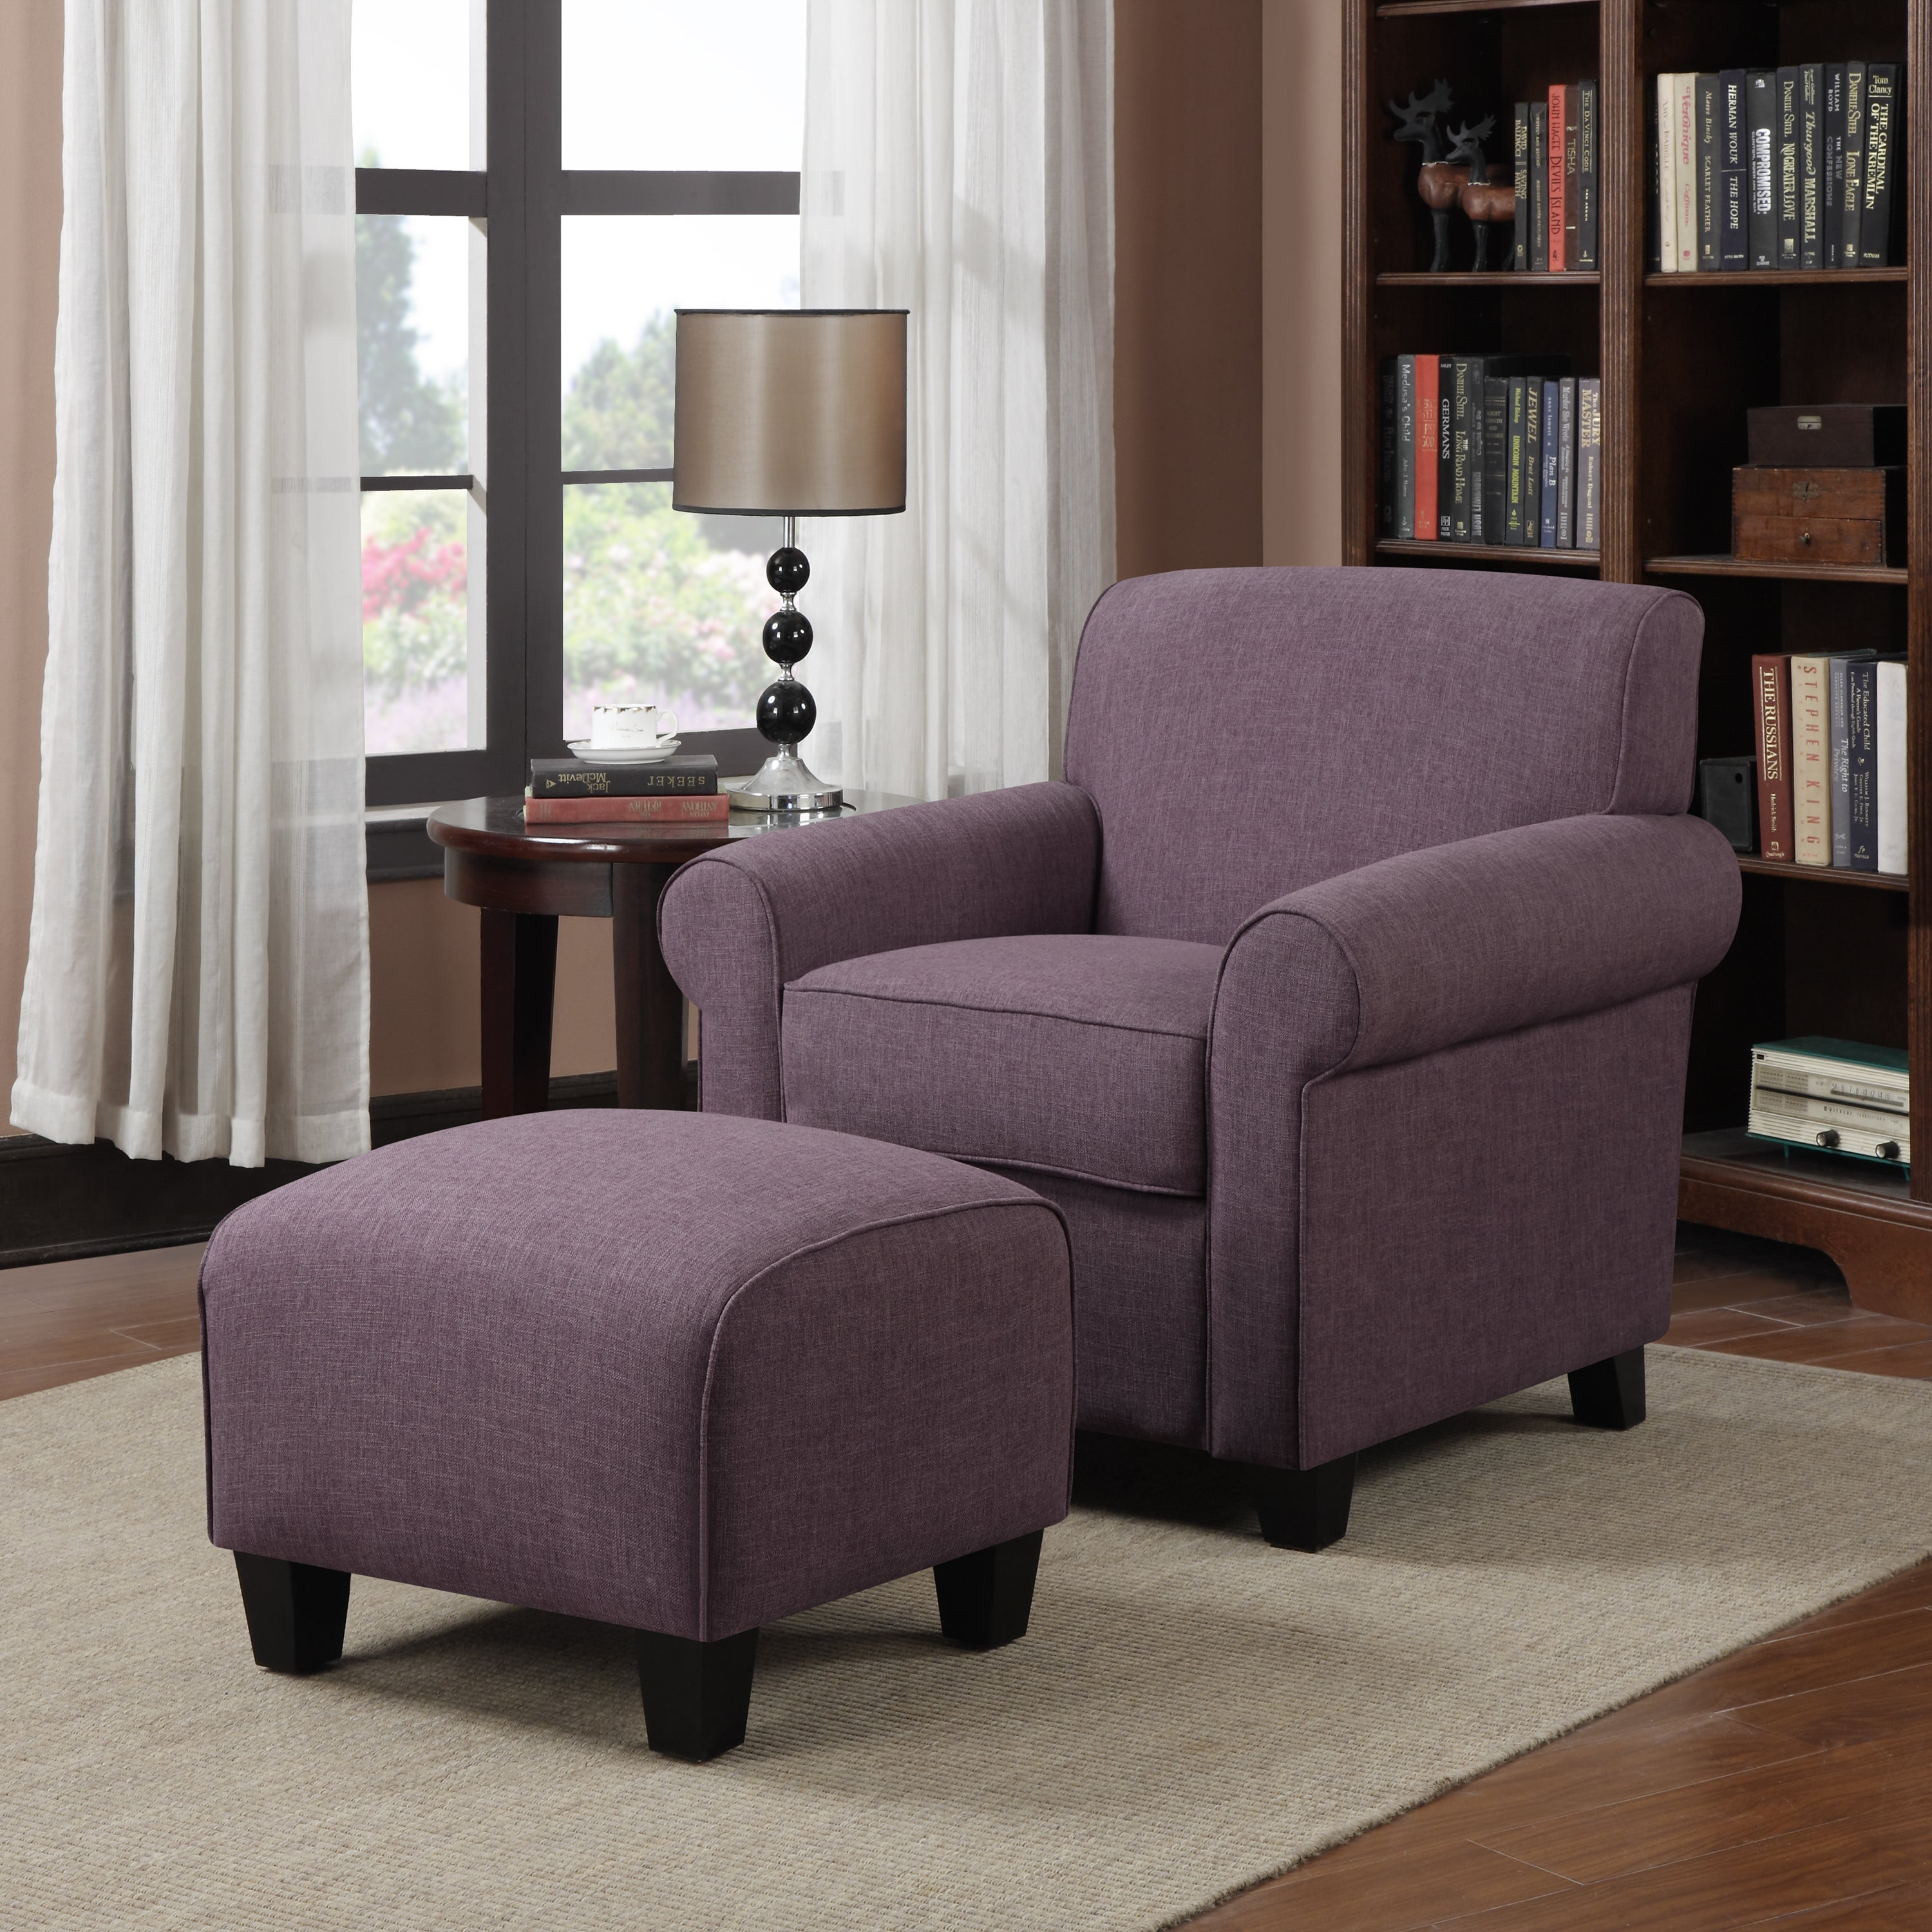 your nursery house narrow living chair ottoman and twin overstock size of sleeper in room ottomans full chairs buying furniture